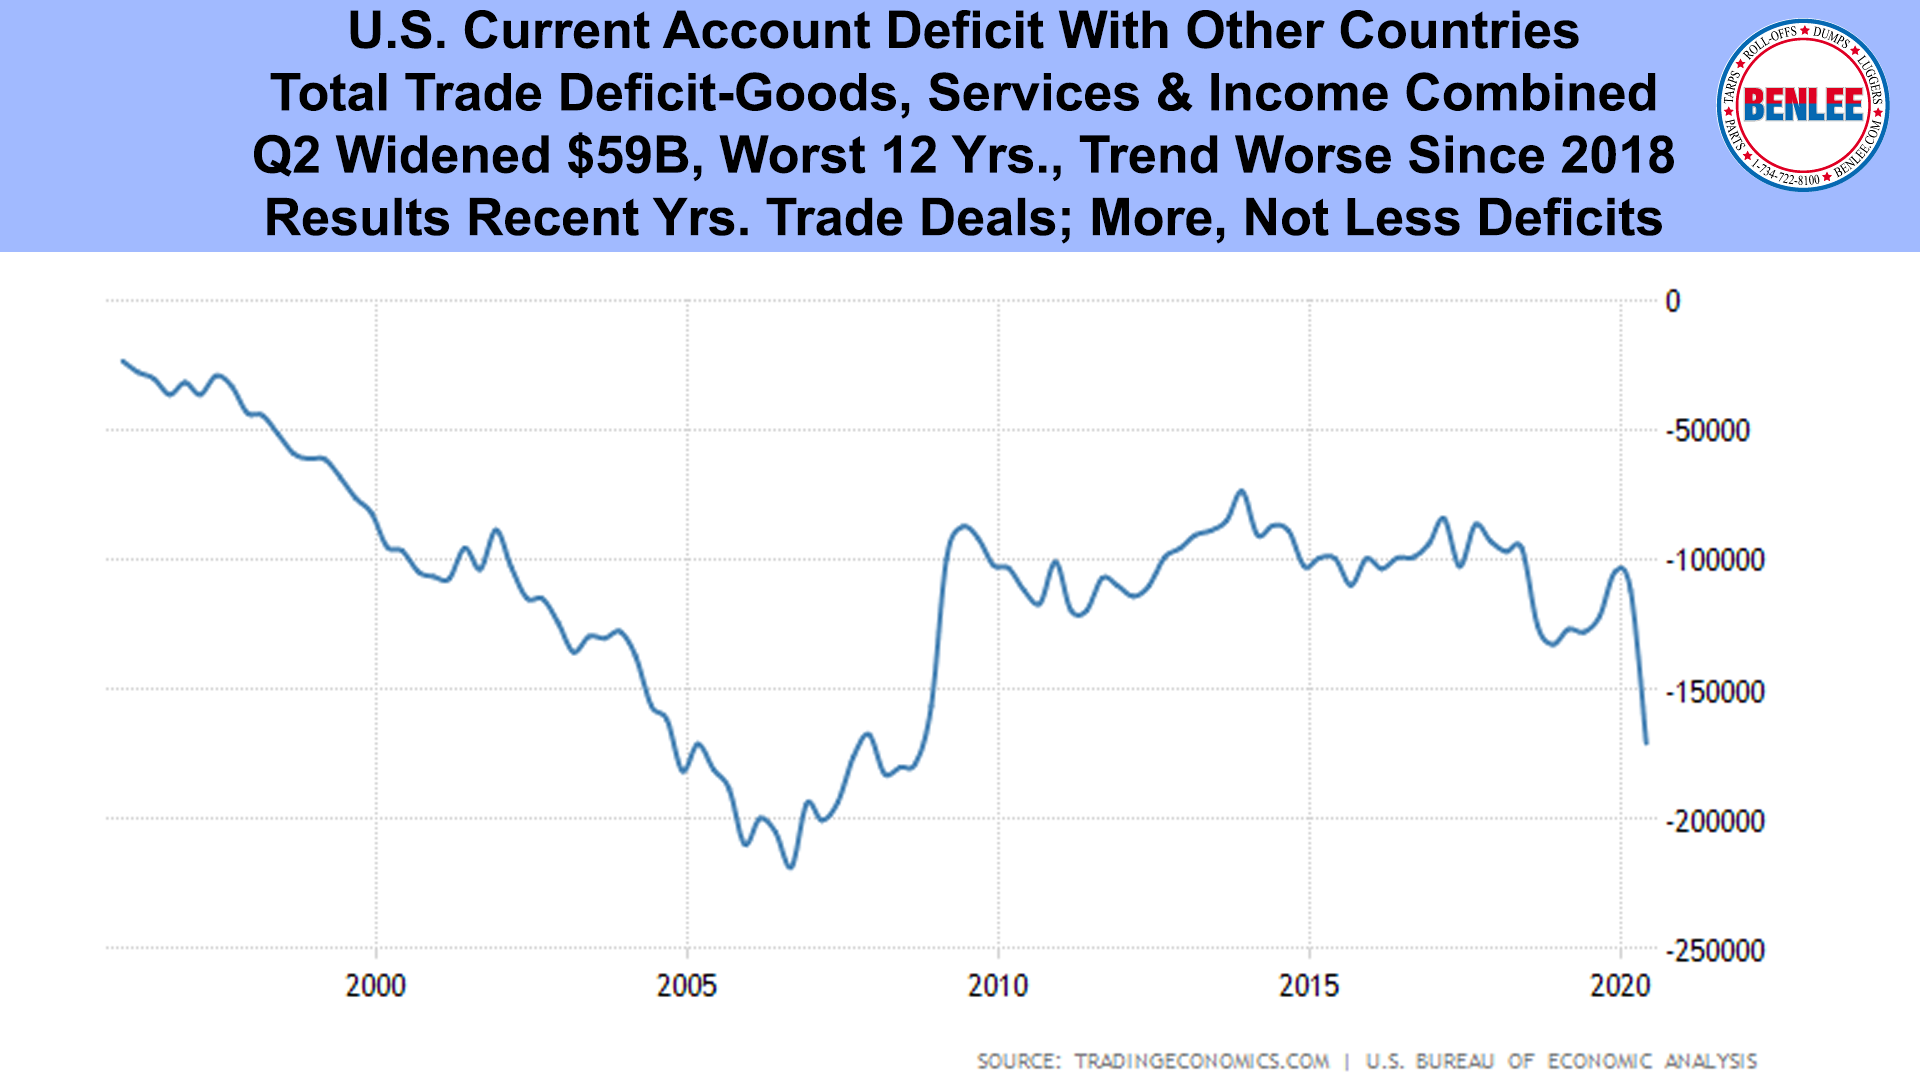 U.S. Current Account Deficit With Other Countries